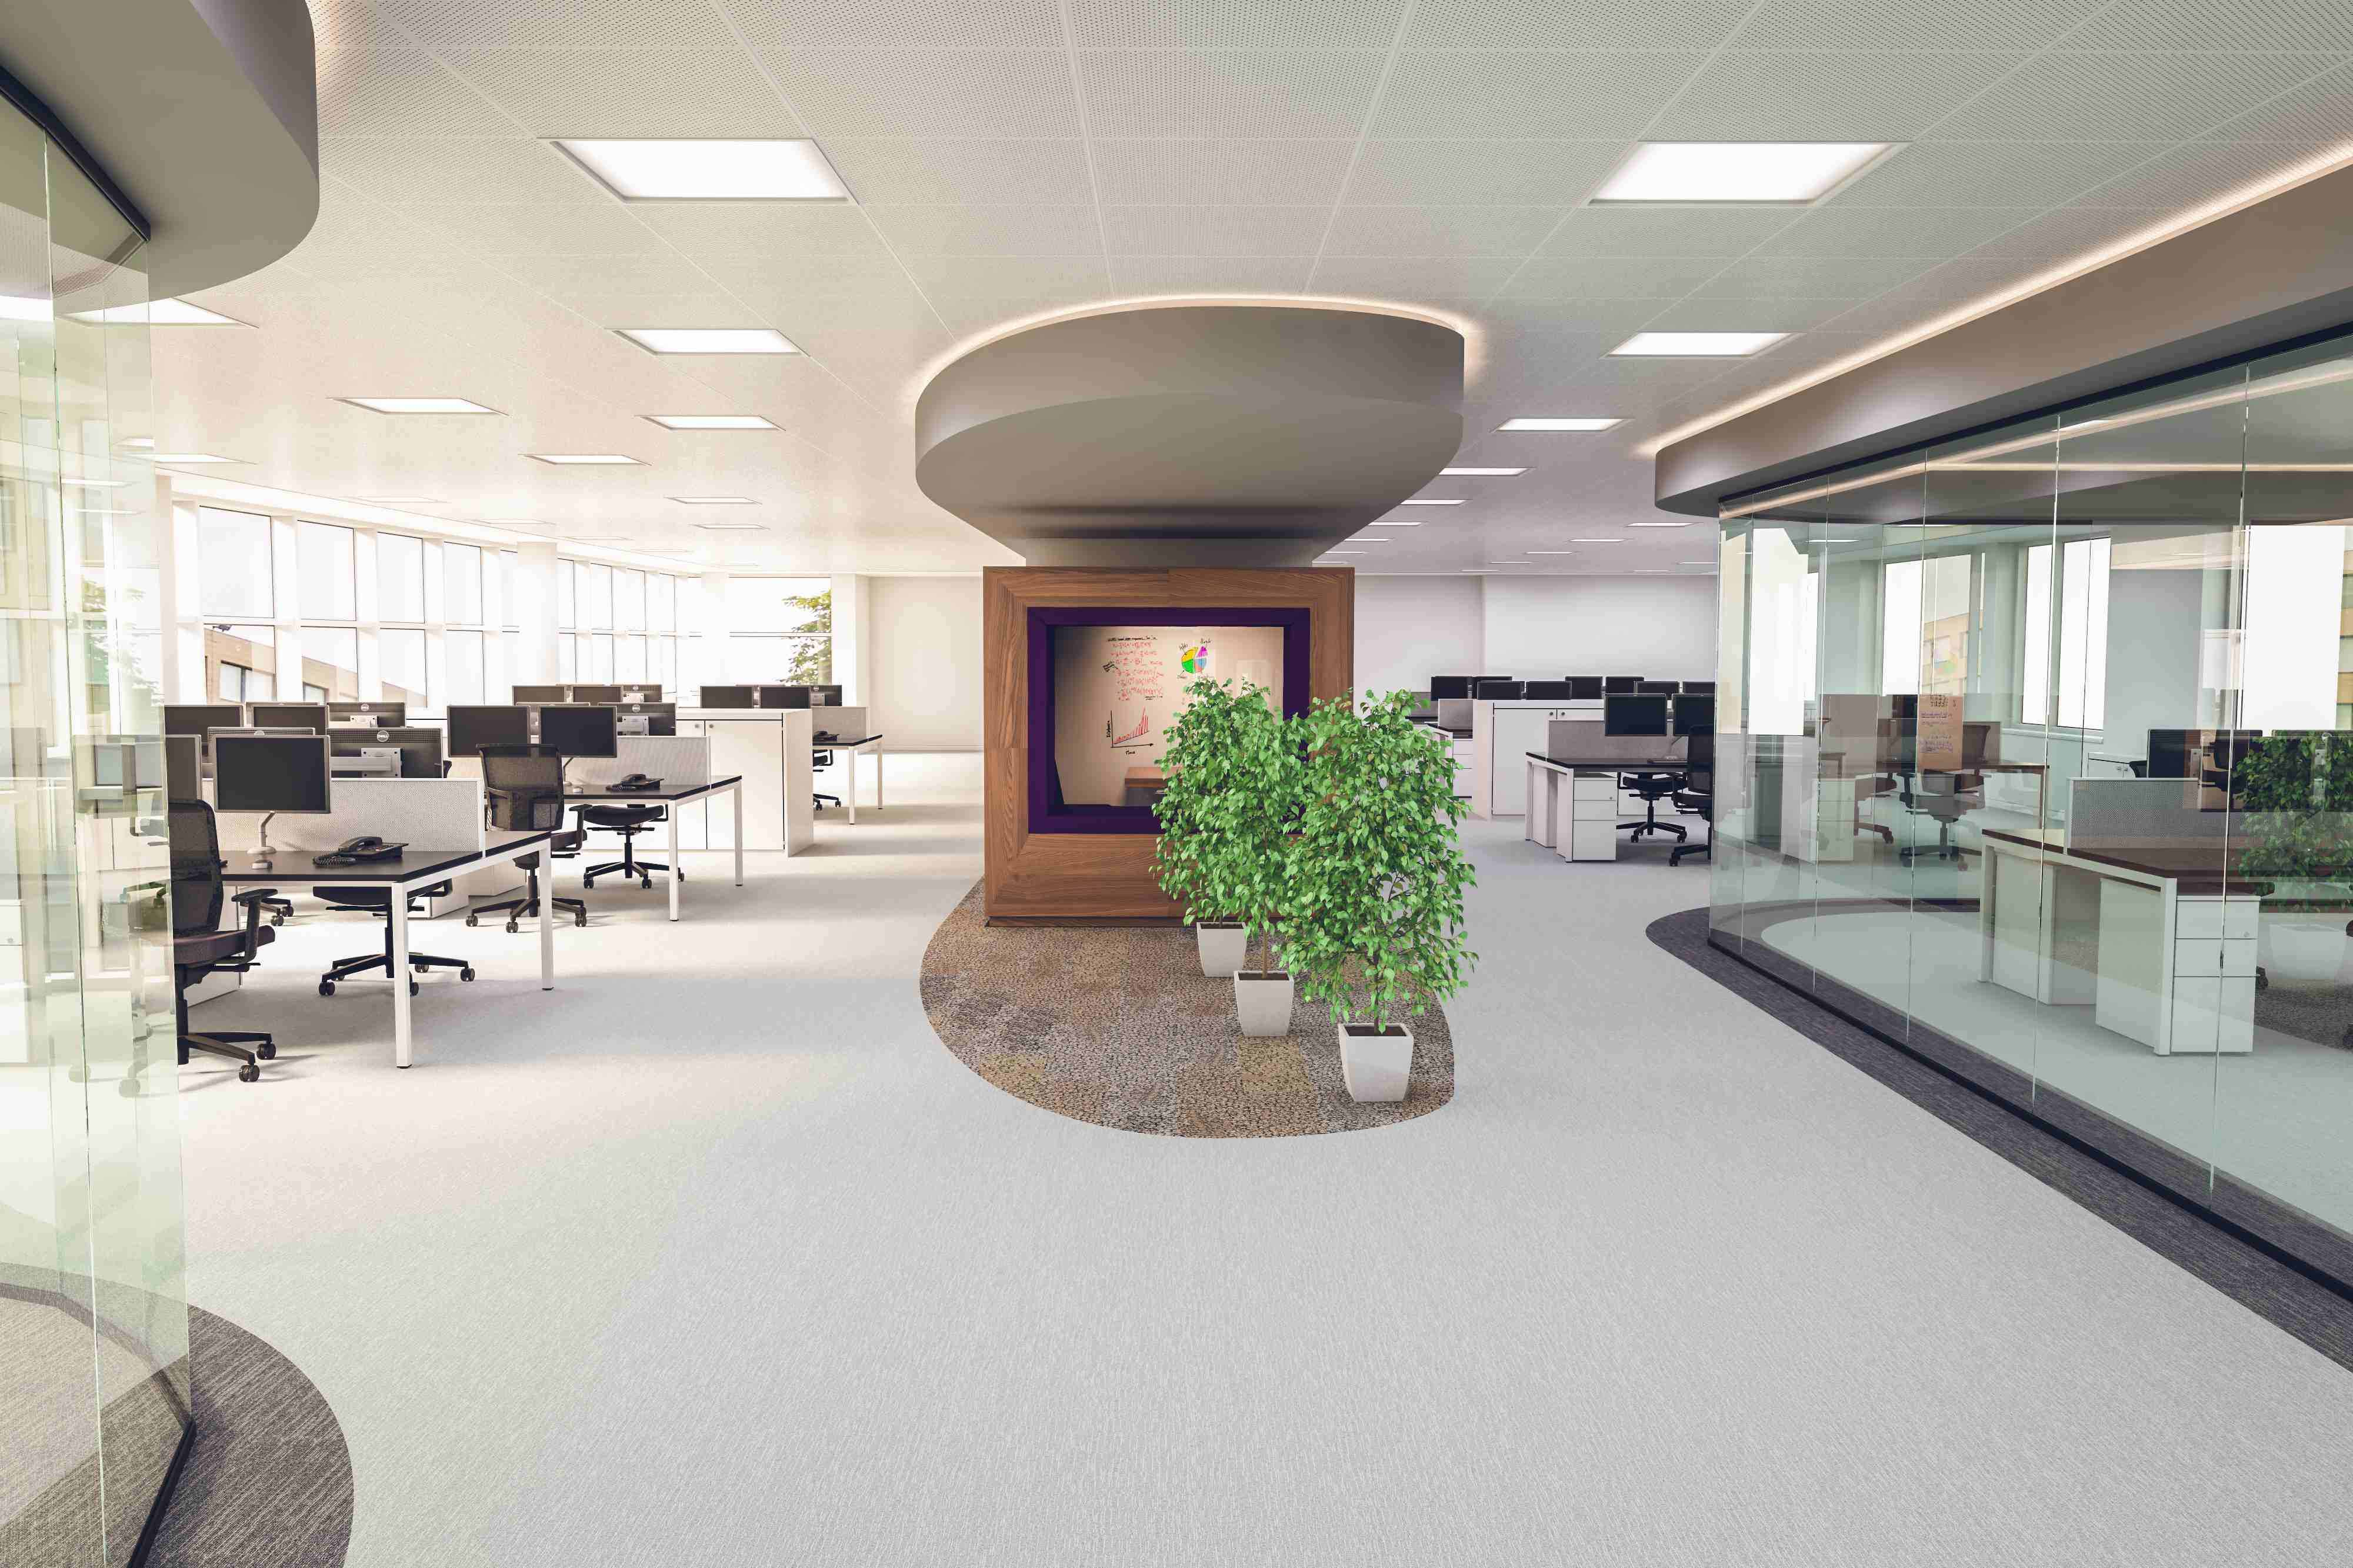 new office design. The Elements That Work In Your Current Office Space And Shaping Them Alongside Those Aspects You\u0027re Looking To Add With New Design. Design